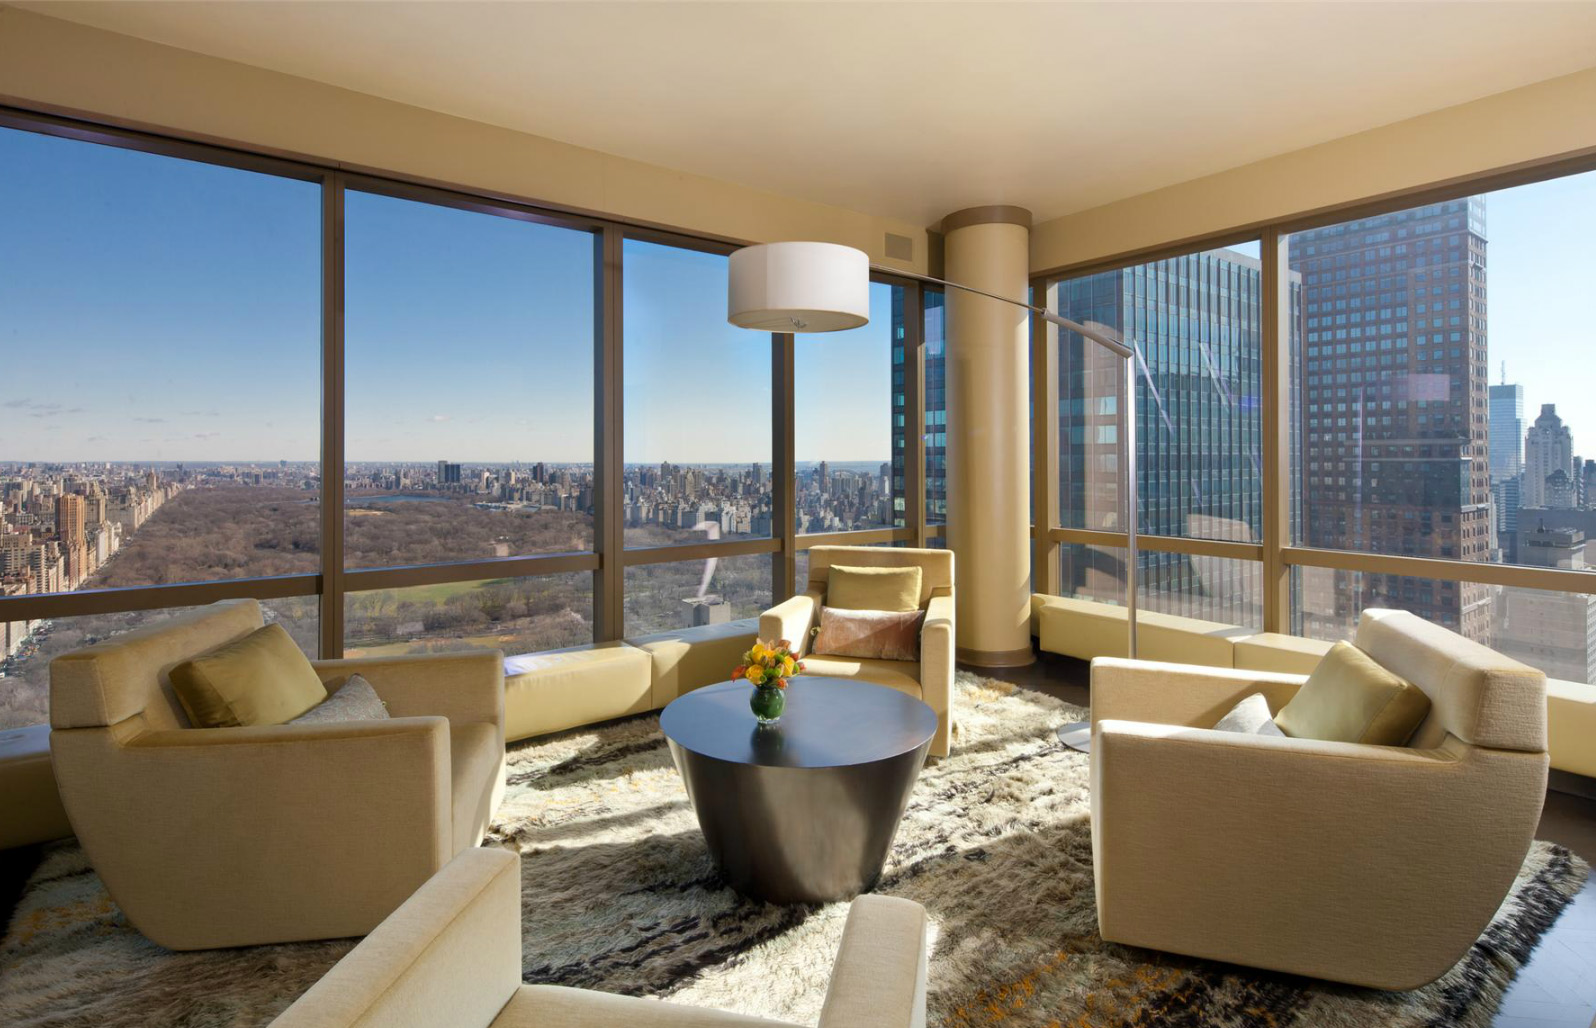 Buy christopher meloni 39 s place and he 39 ll throw in a porsche for Apartments for sale manhattan nyc